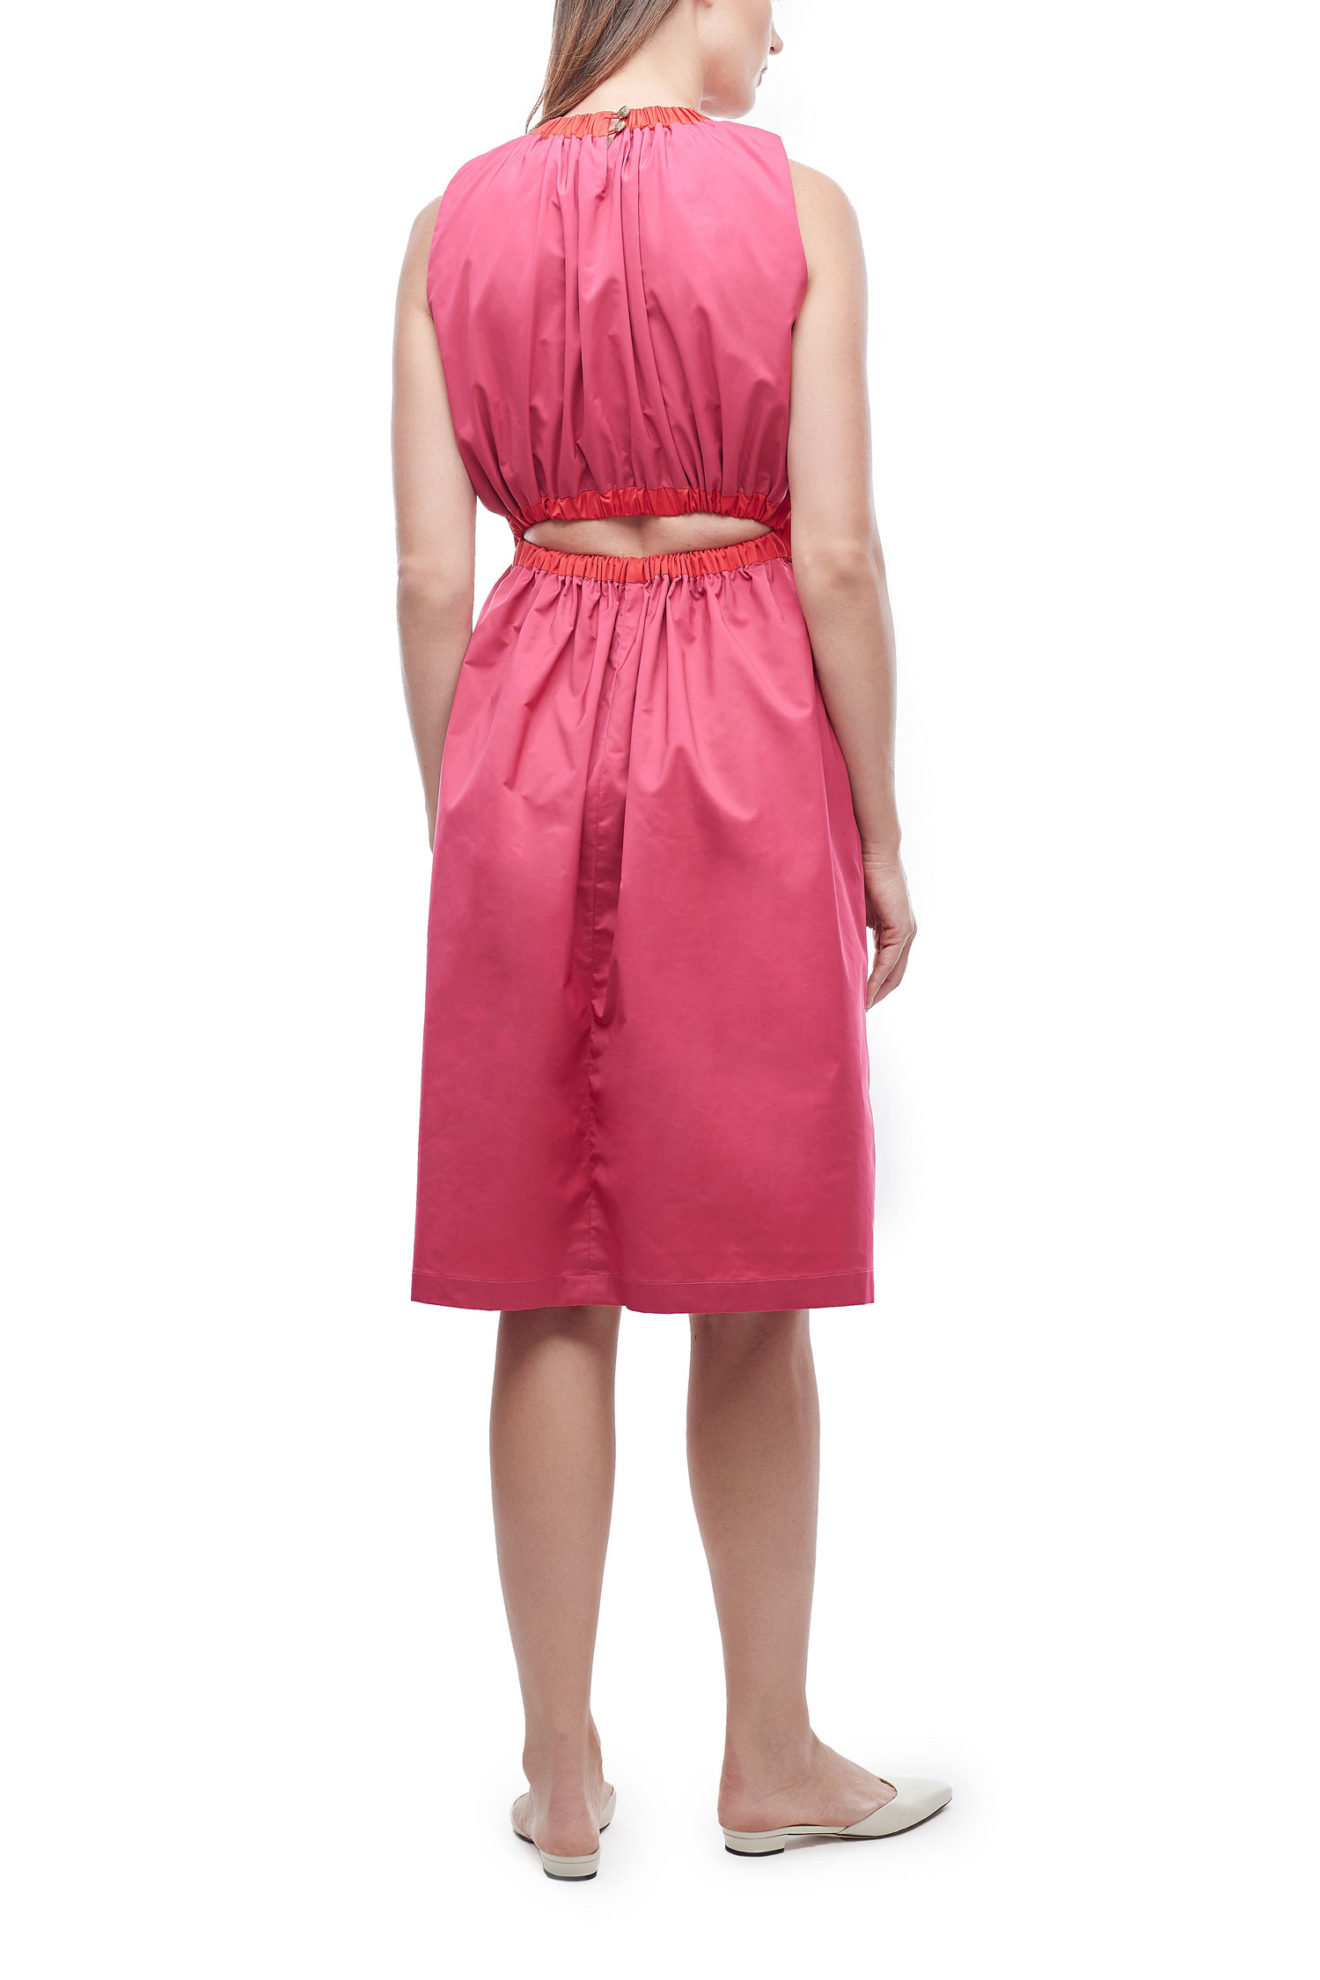 The Maddie Dress in Hot Pink & Red - Atelier Patty Ang